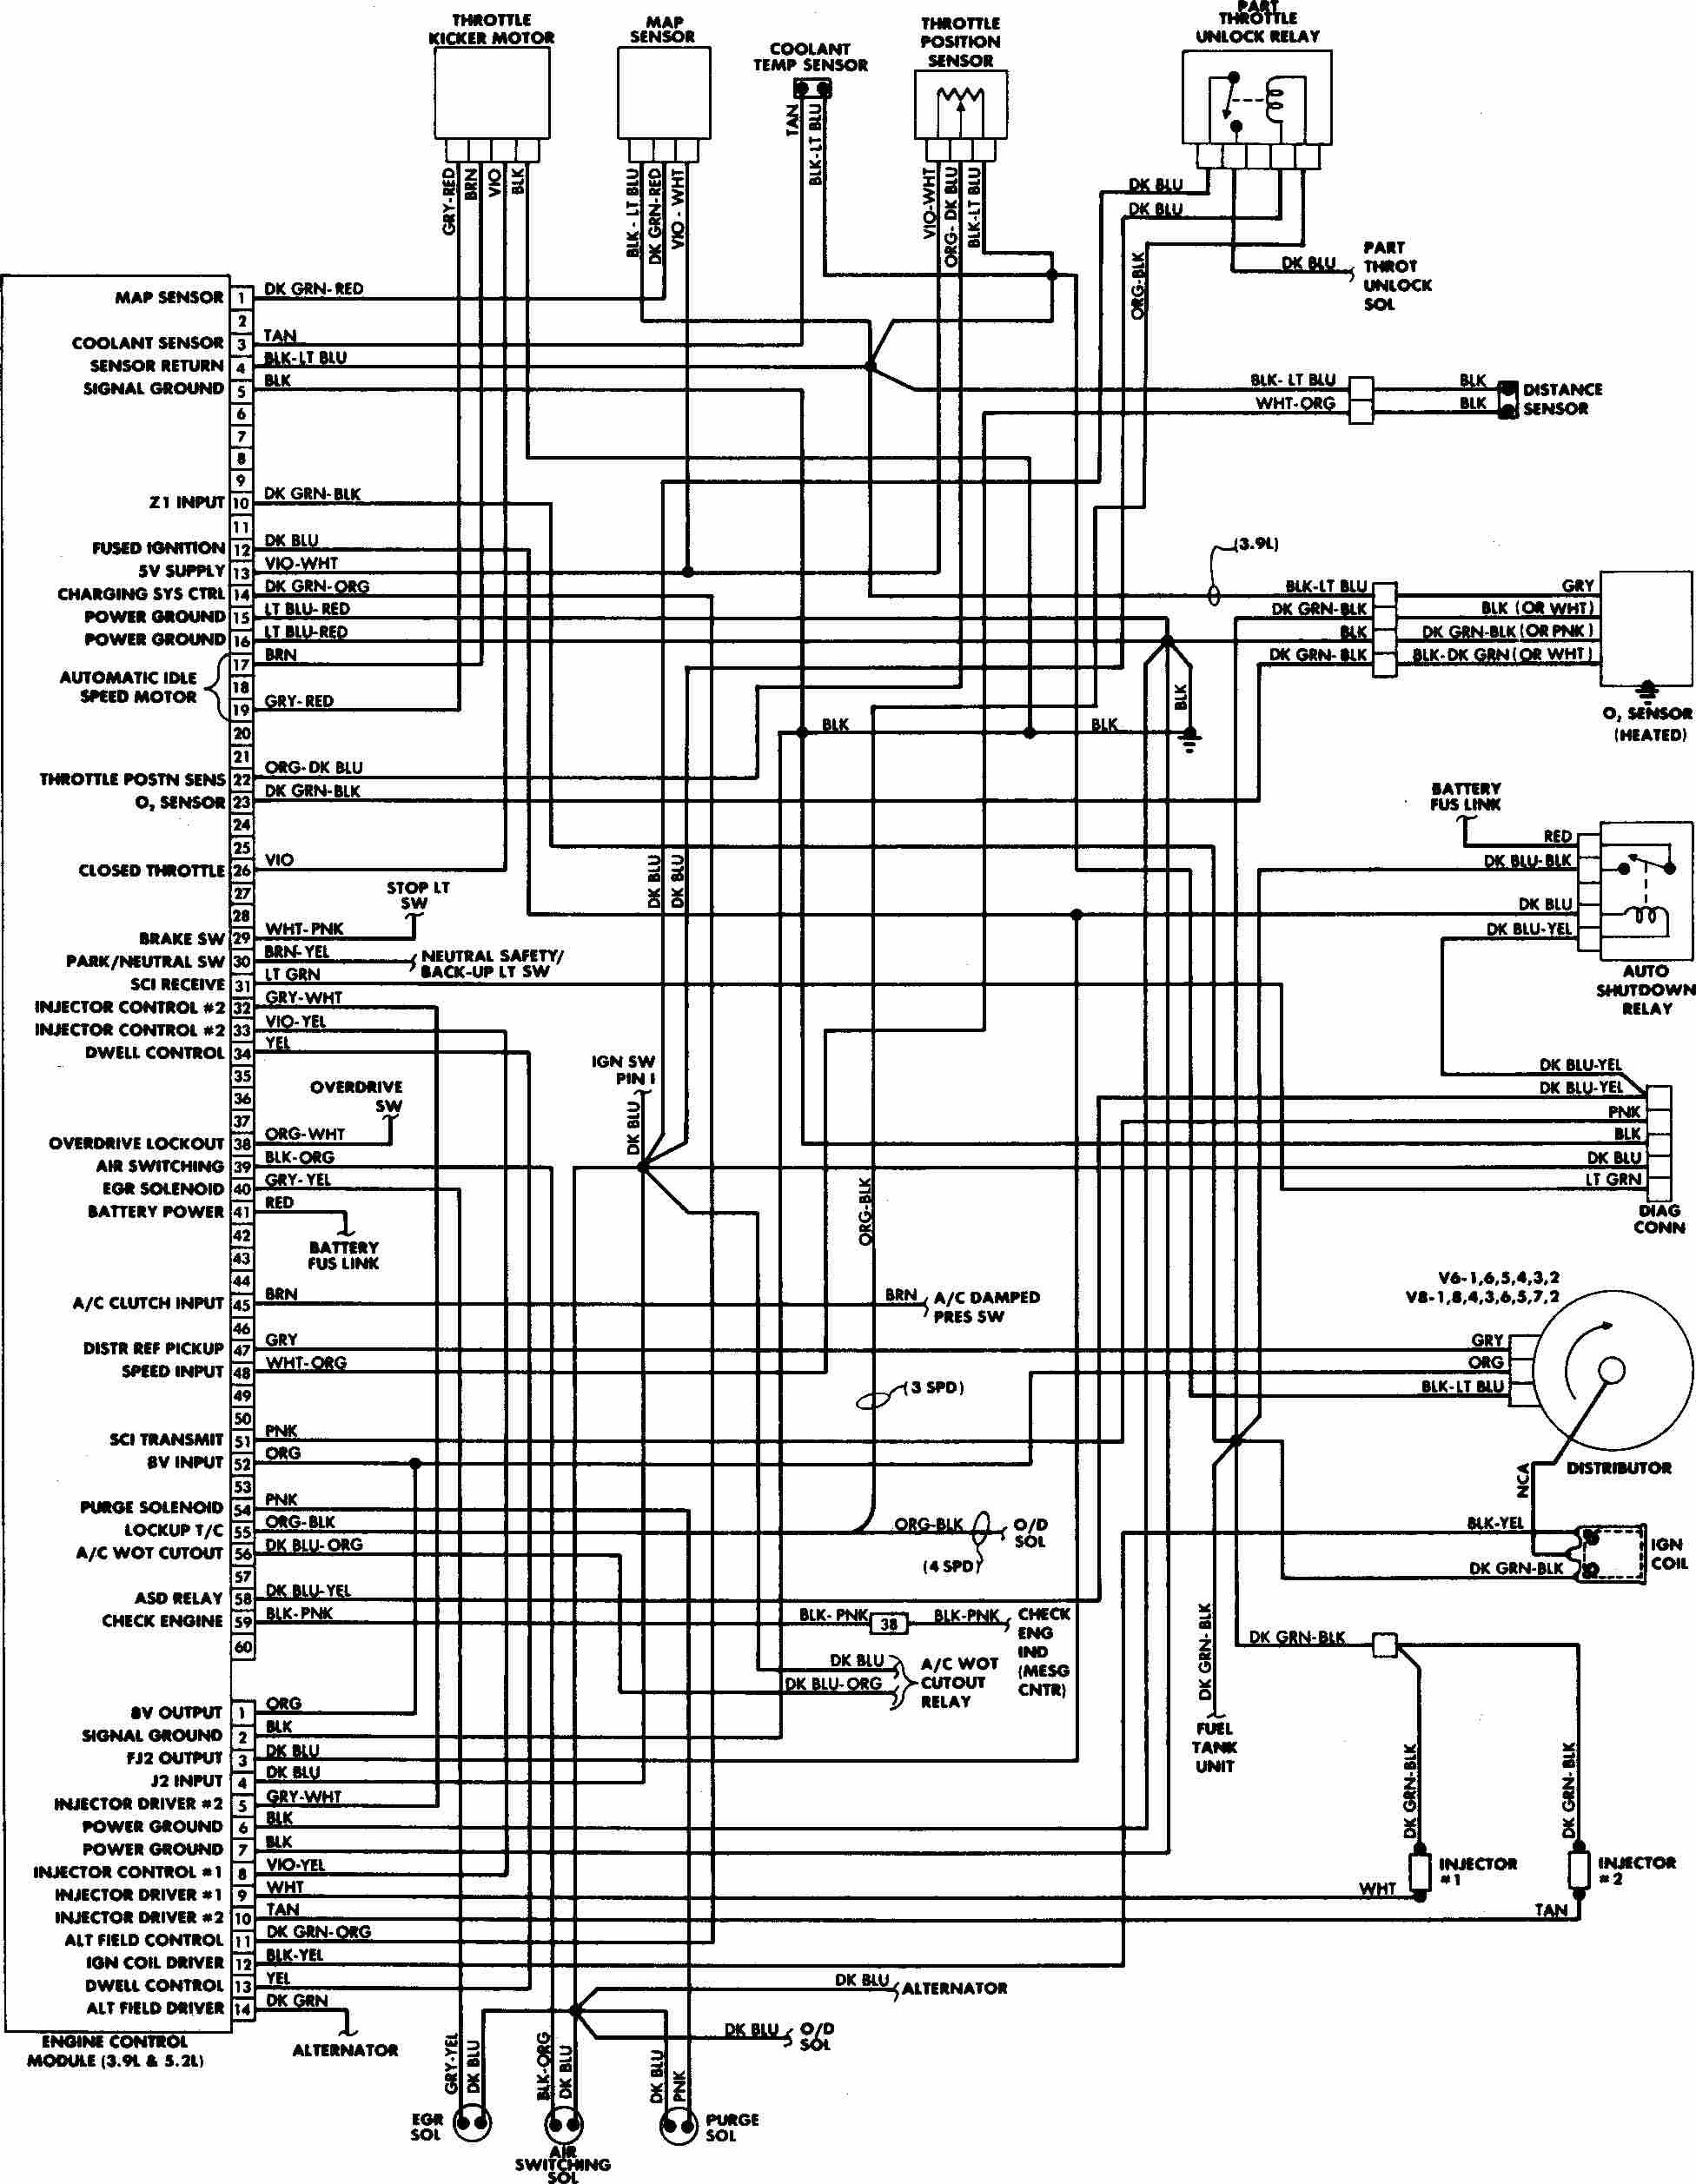 1998 Dodge Neon Wiring Diagram from i0.wp.com